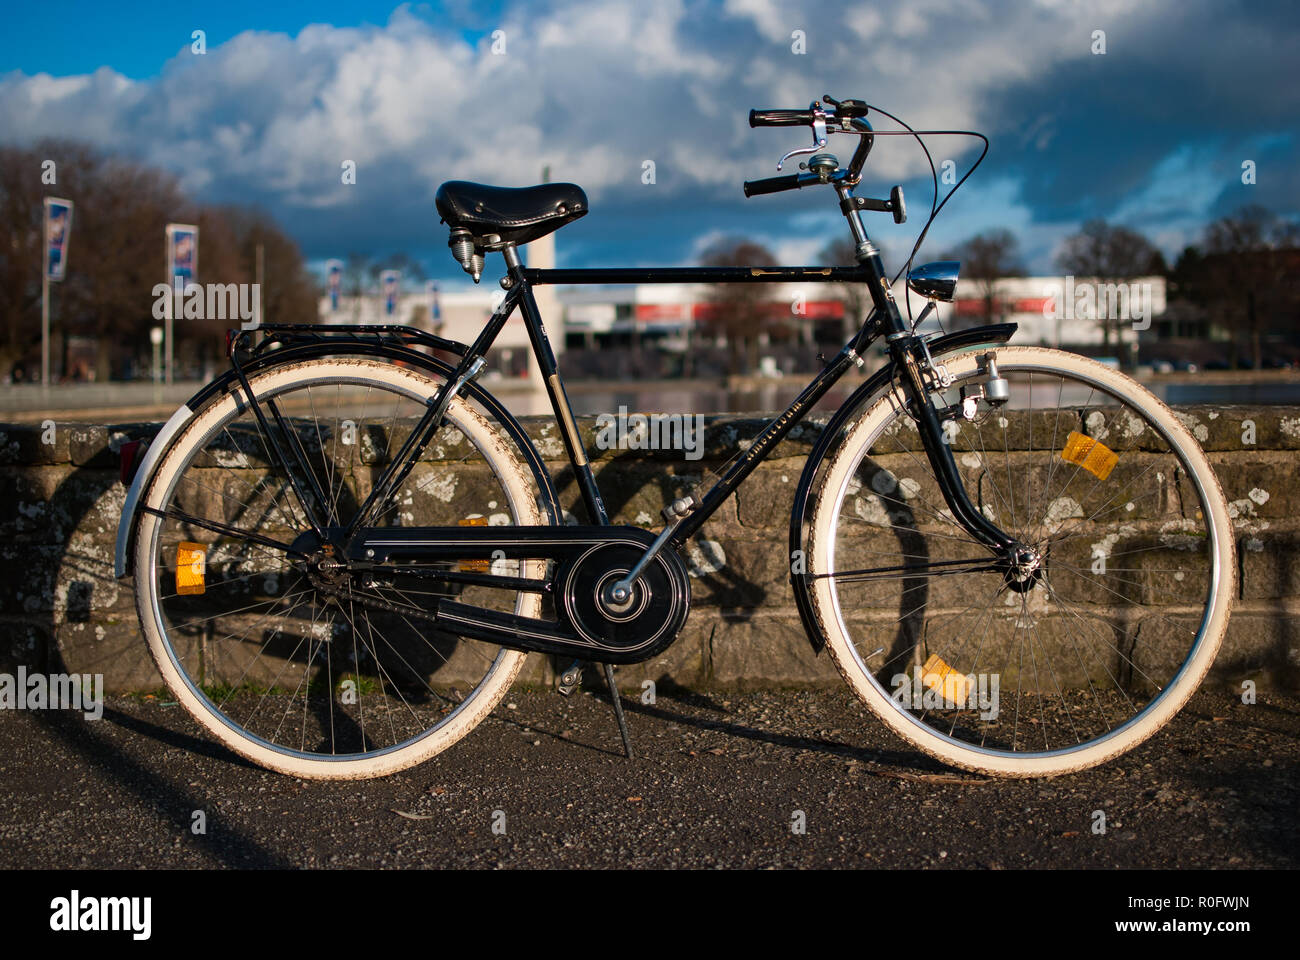 An old vintage bike in front of a stone wall and the cloudy blue sky - Stock Image